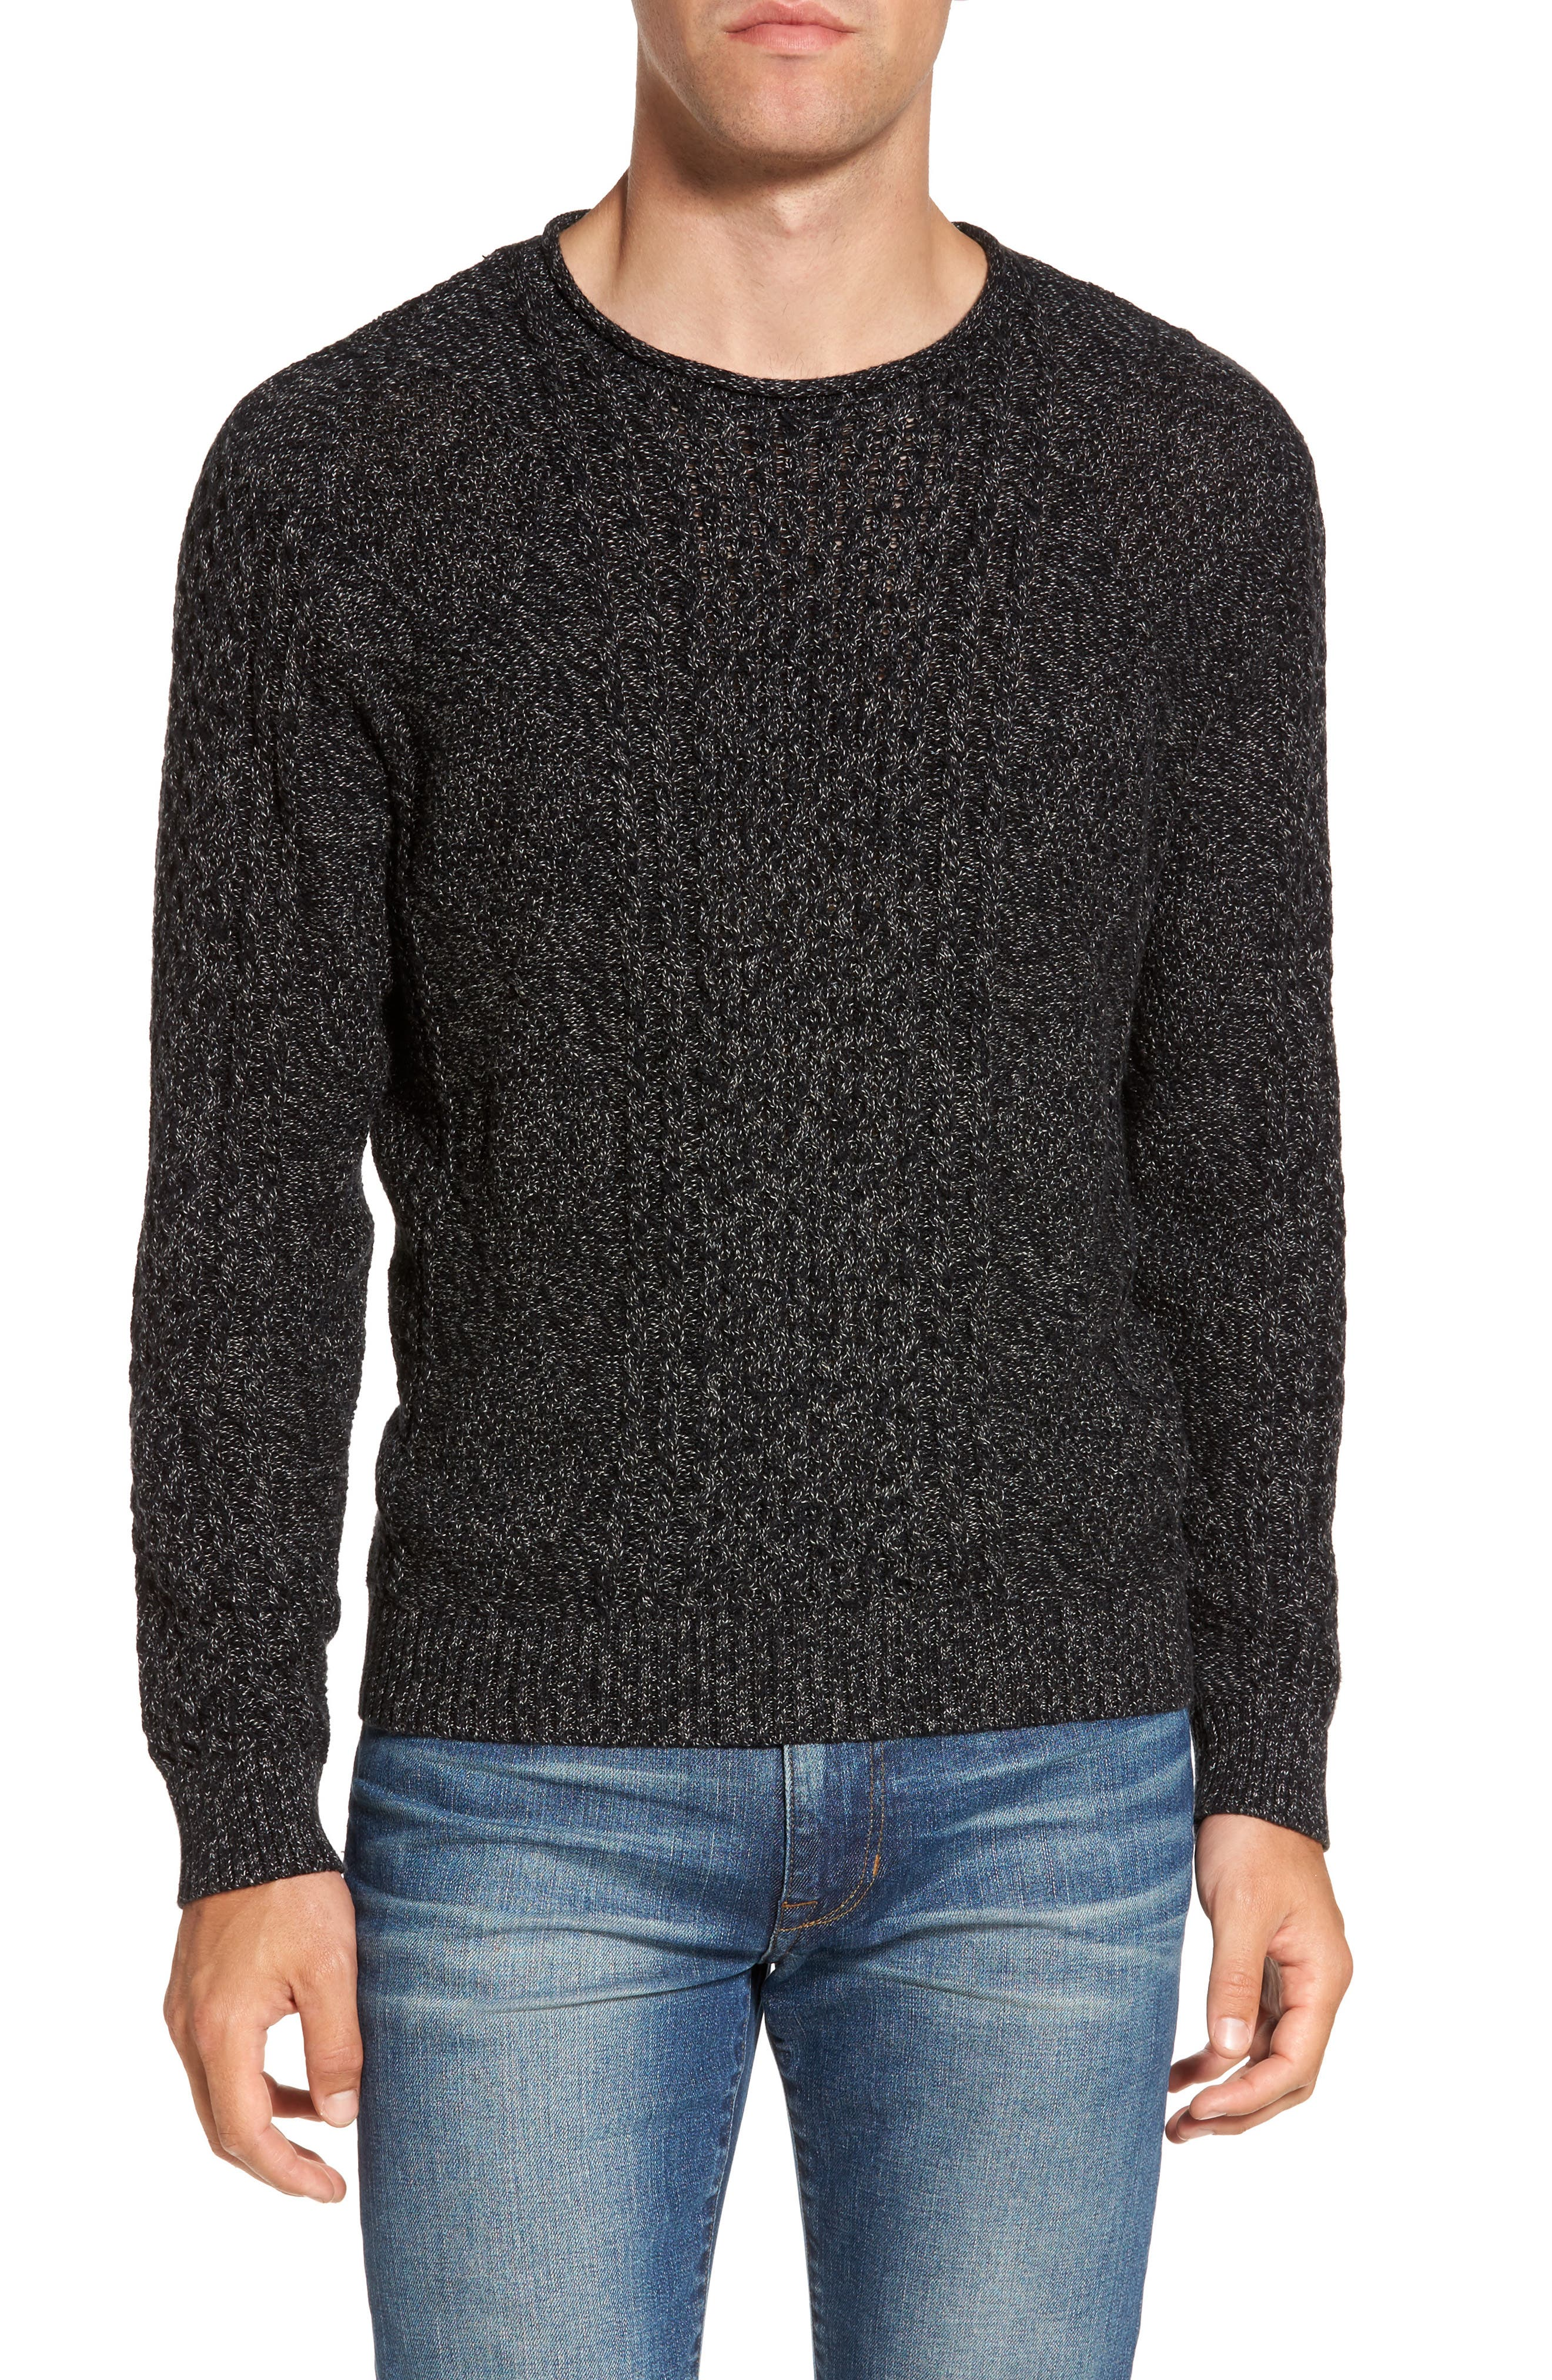 Nordstrom Men's Shop Fisherman Sweater (Tall)